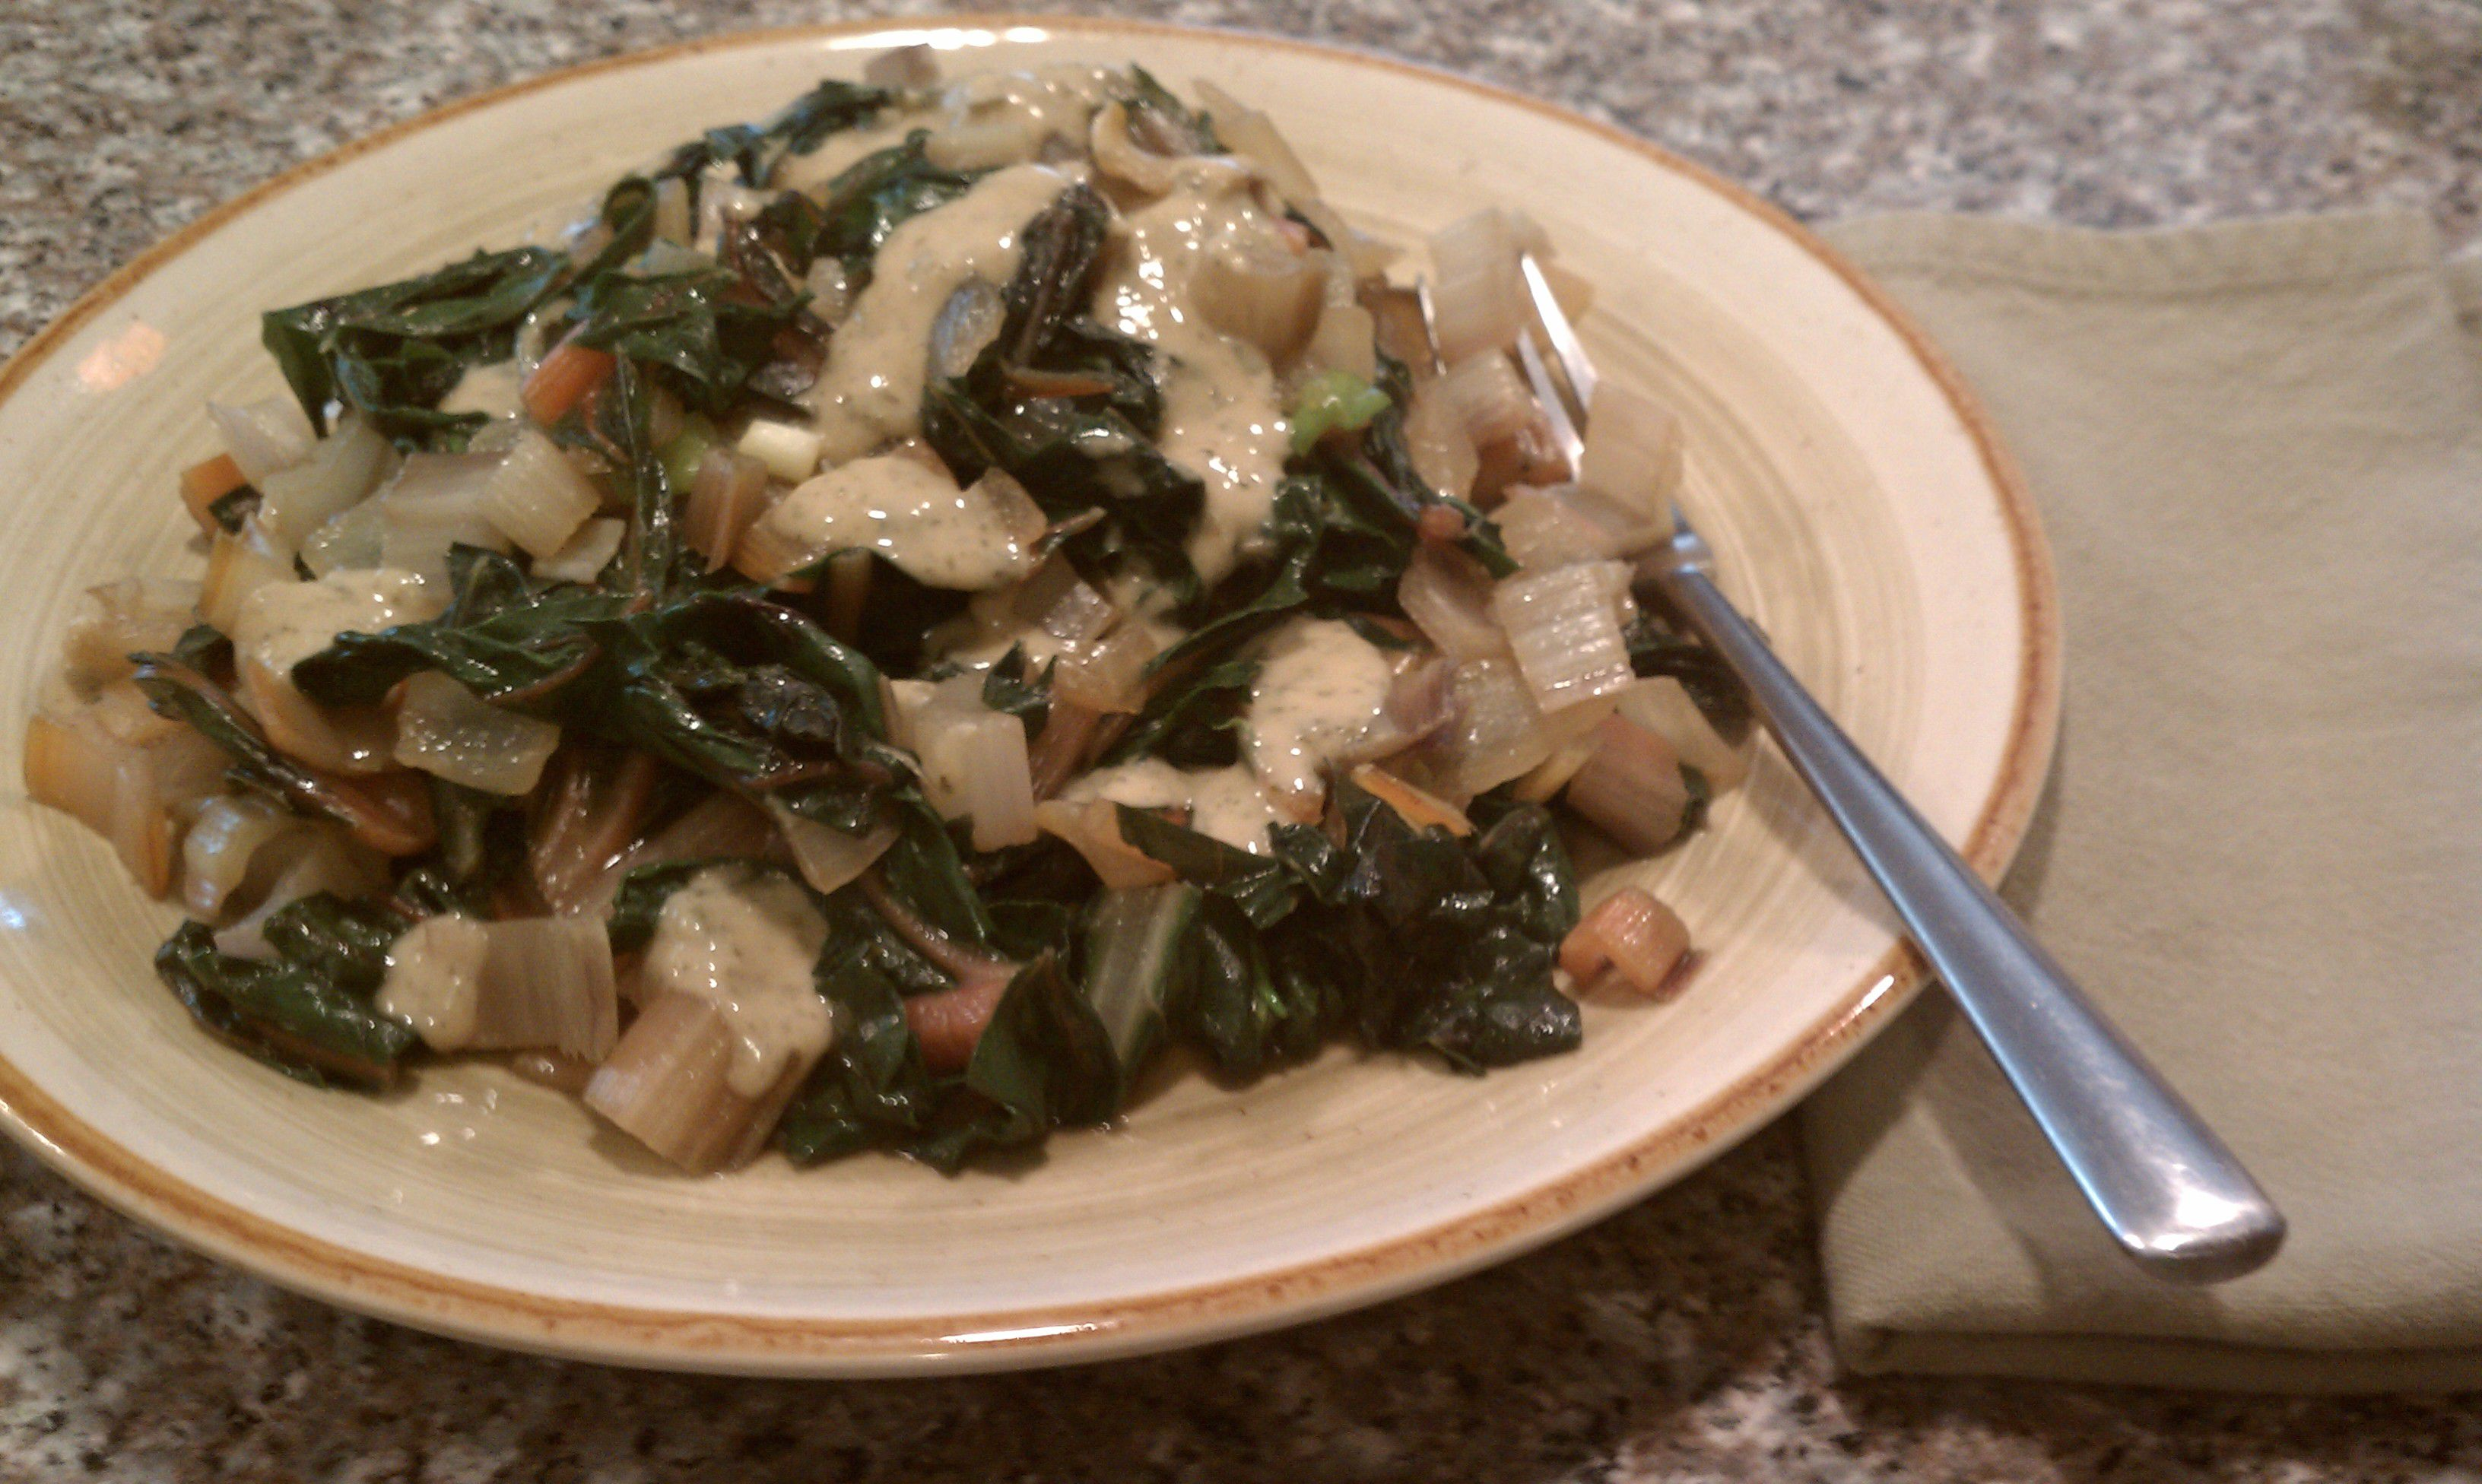 Sauteed Swiss Chard with Toasted Walnuts